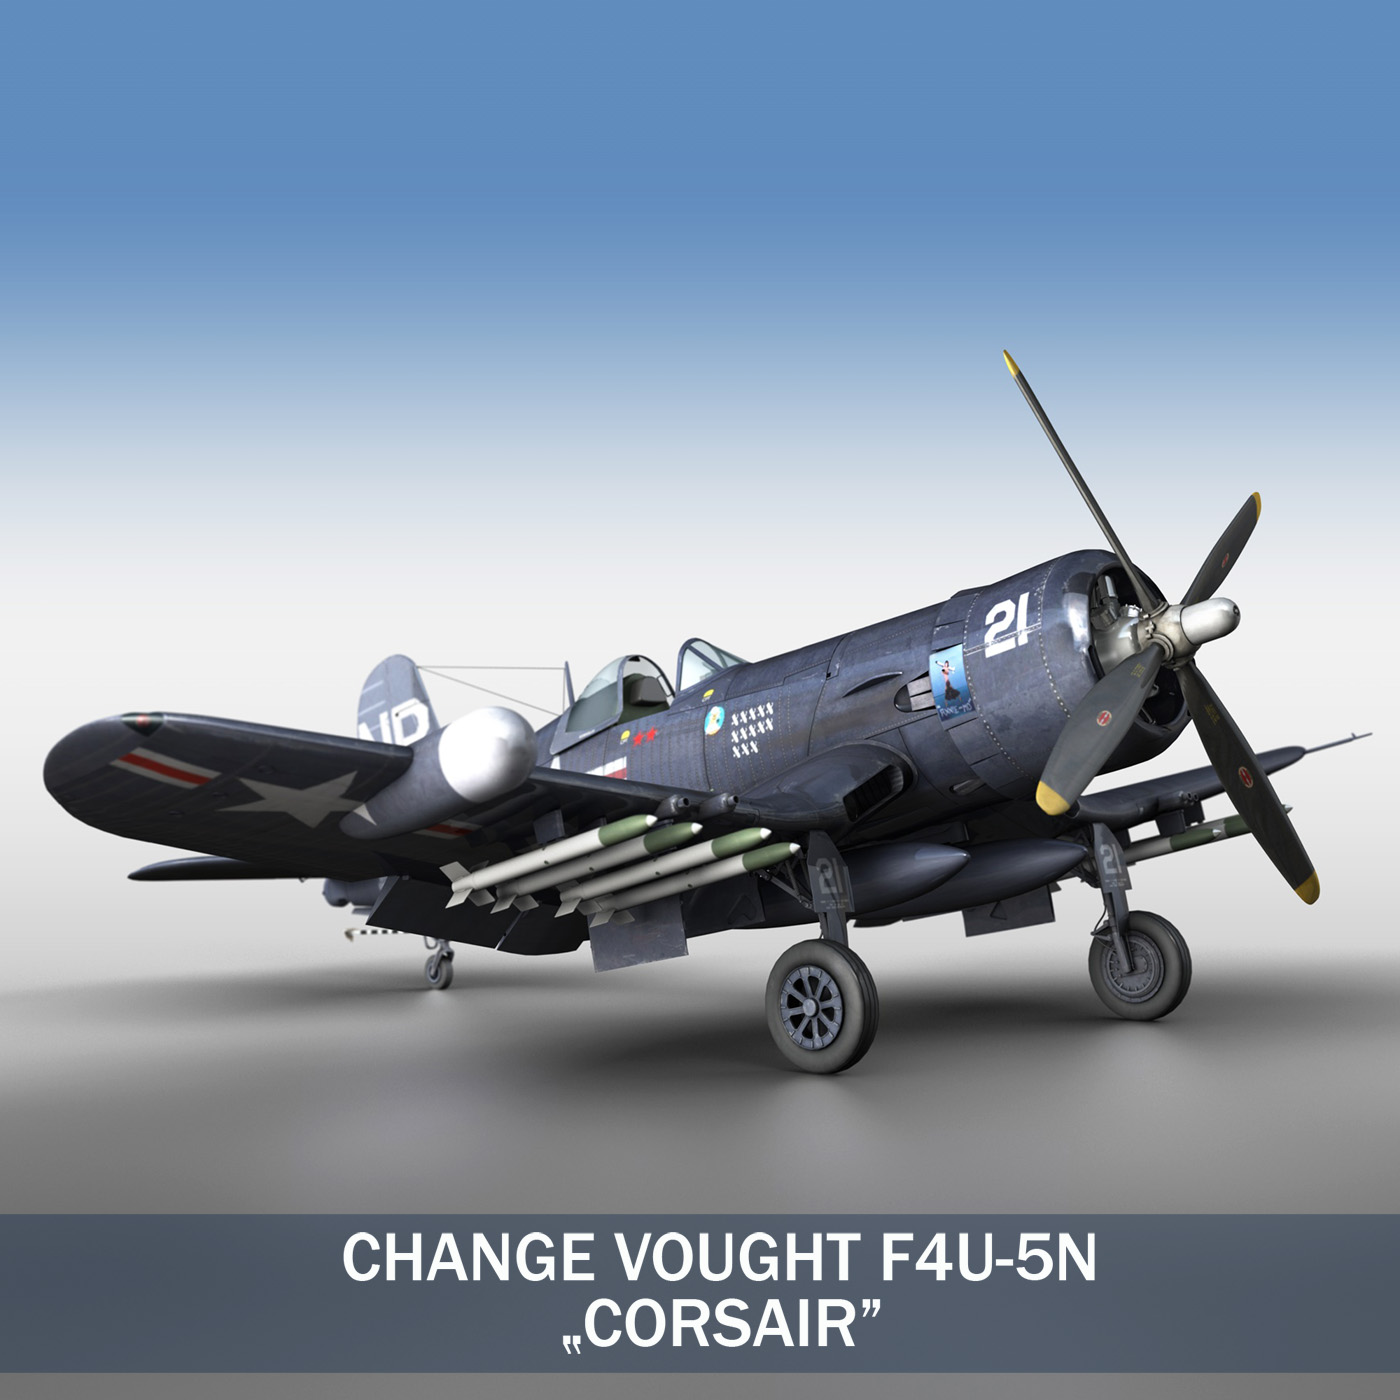 promjena vought f4u 5n corsair 3d model 3ds fbx c4d lwo obj 187325